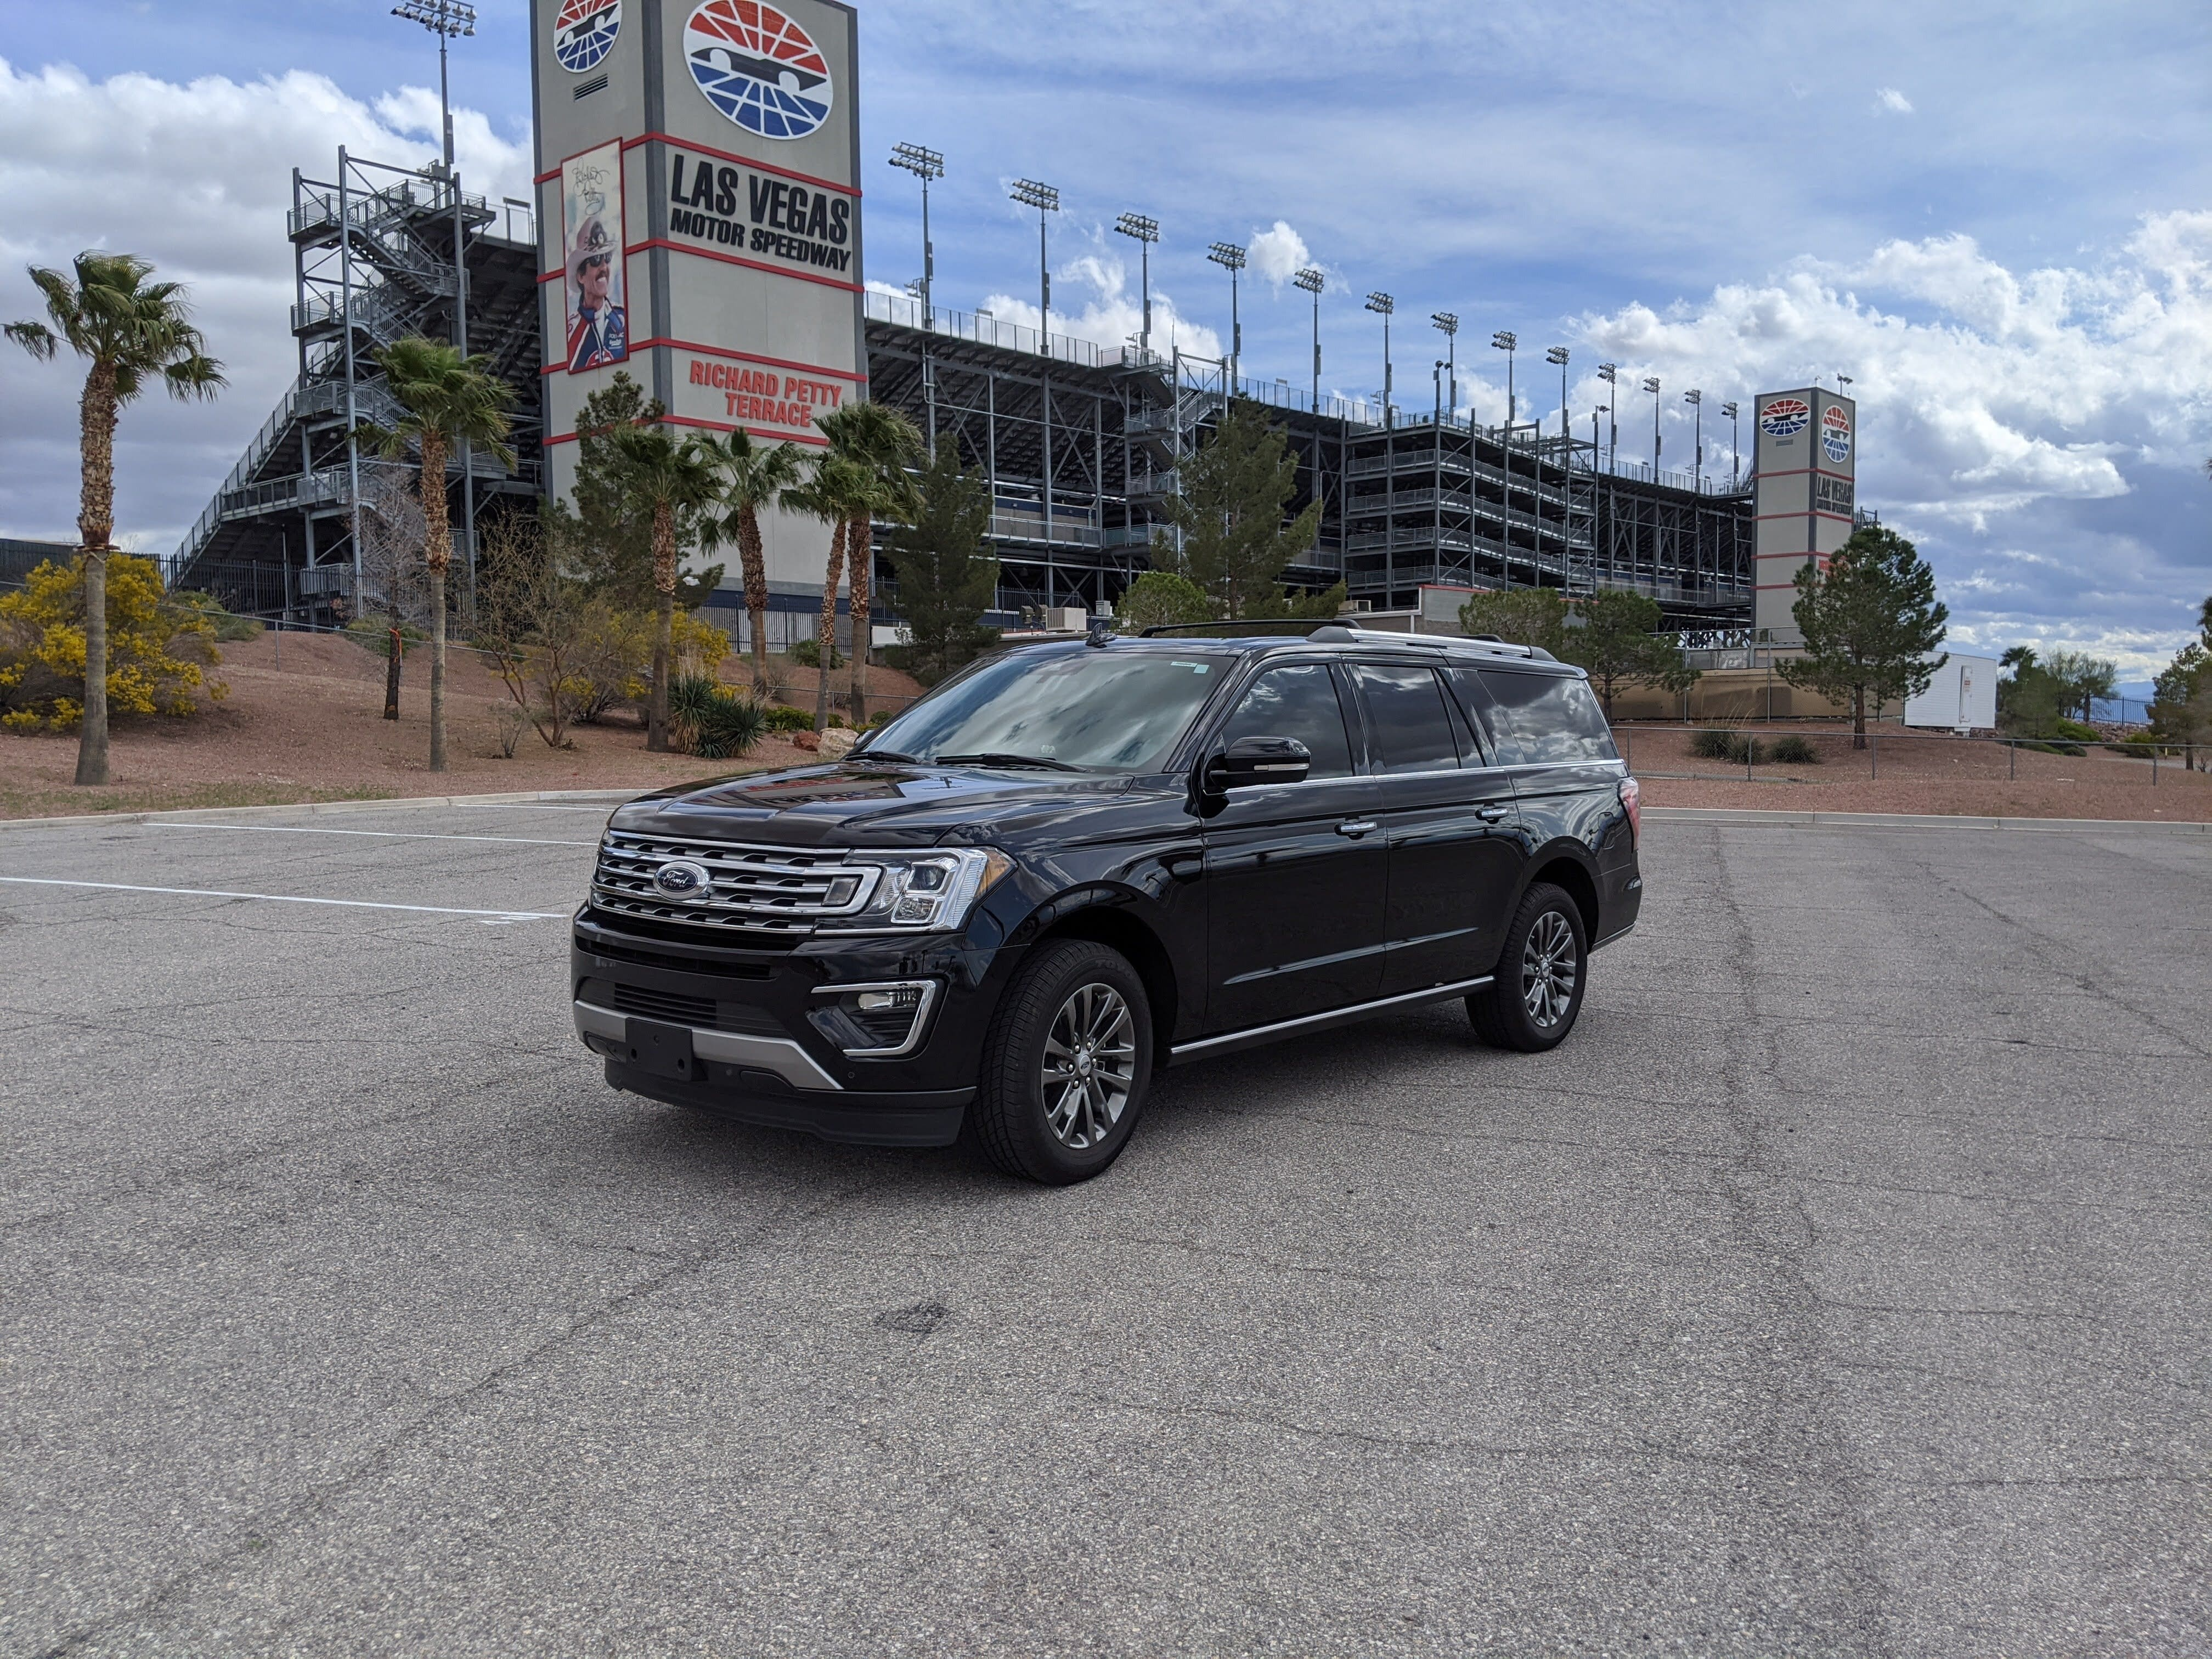 2020 Ford Expedition at Las Vegas Motor Speedway